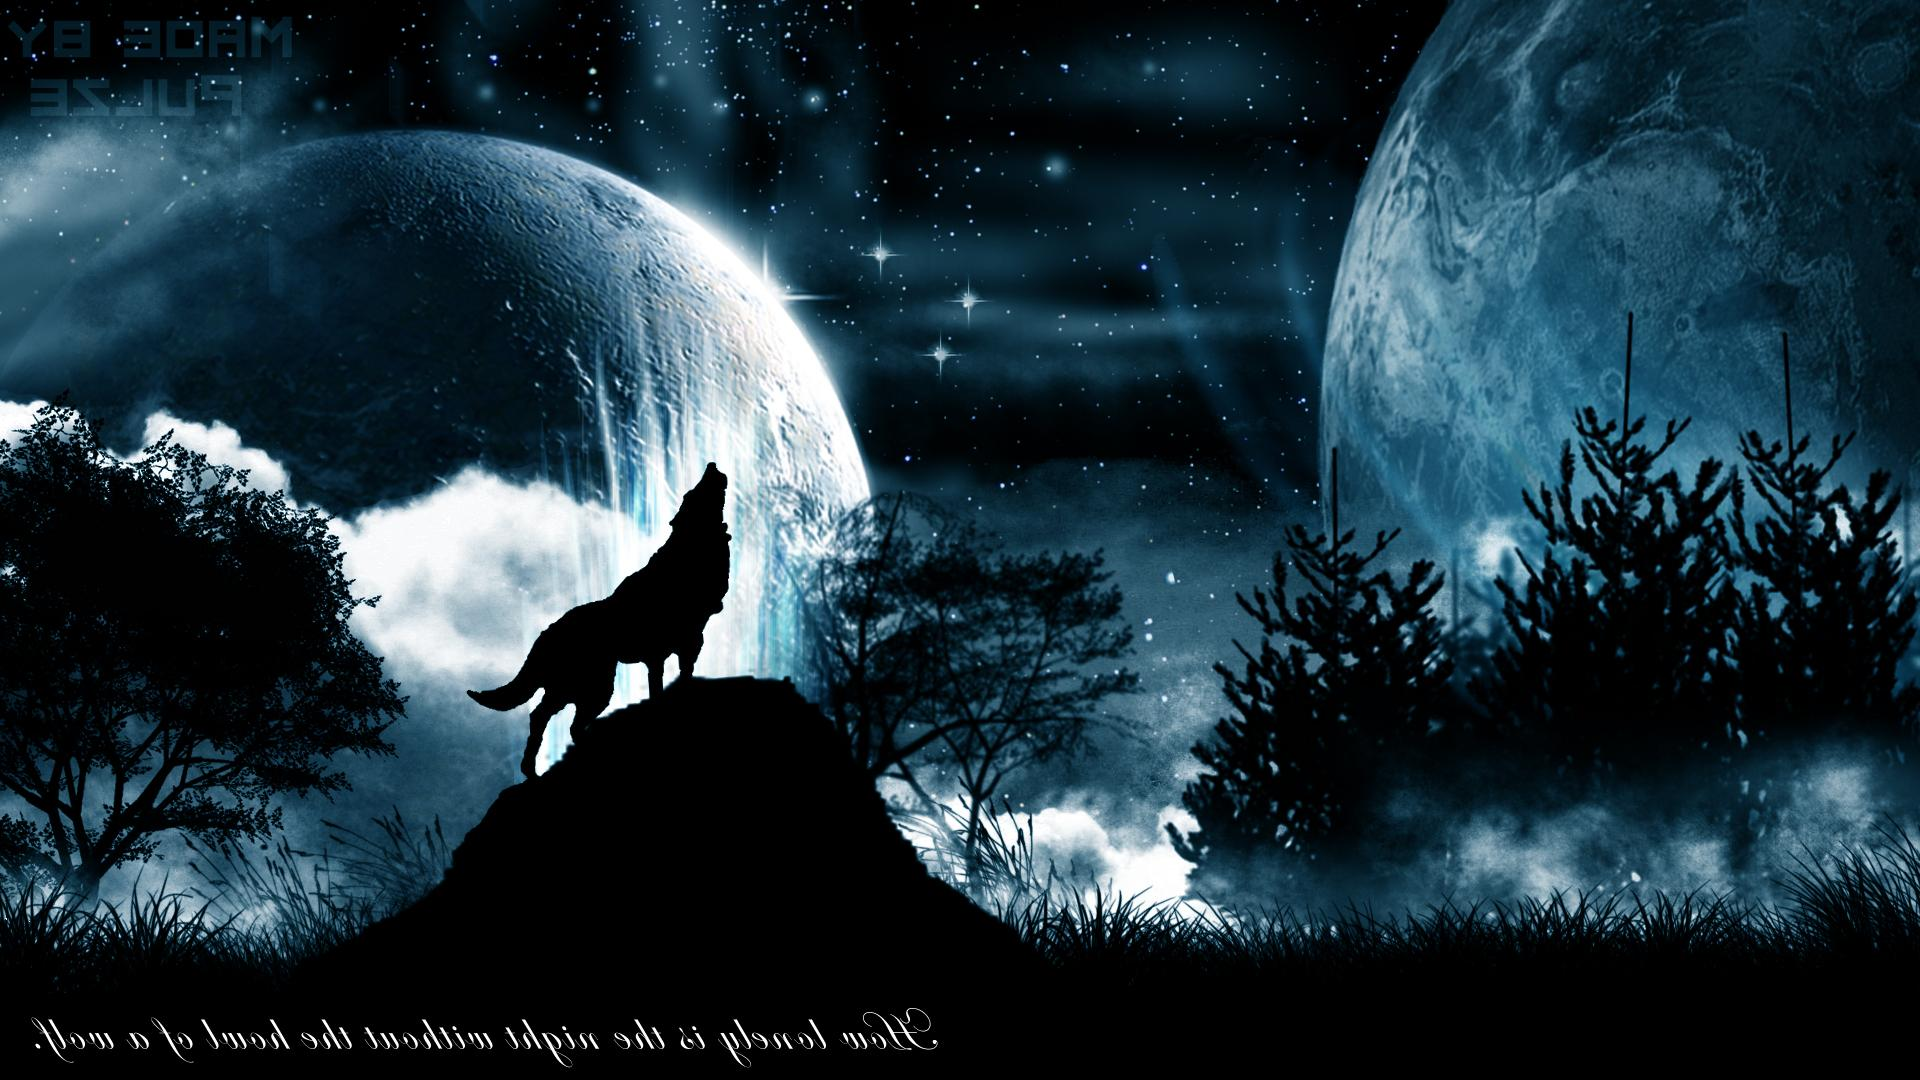 Blue And Black Wolf Black Wolf Howling At The Moon 1920x1080 Download Hd Wallpaper Wallpapertip